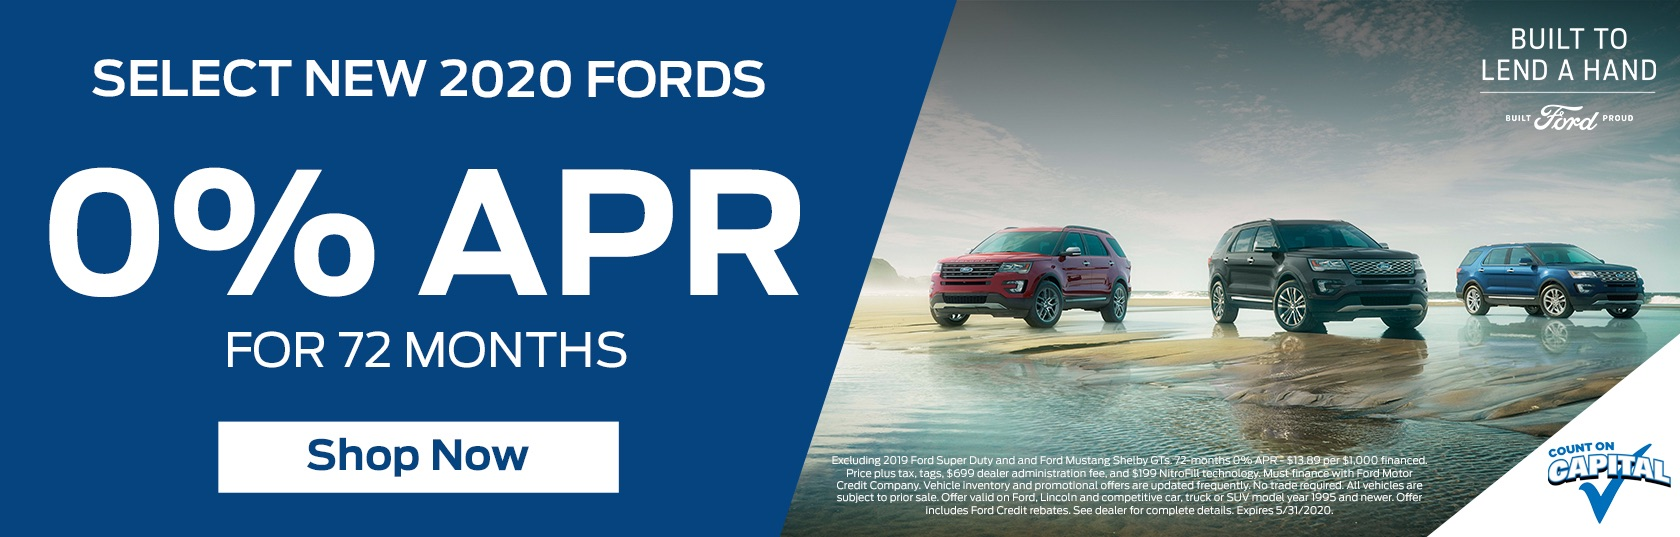 0% APR Banner for 2020 Fords